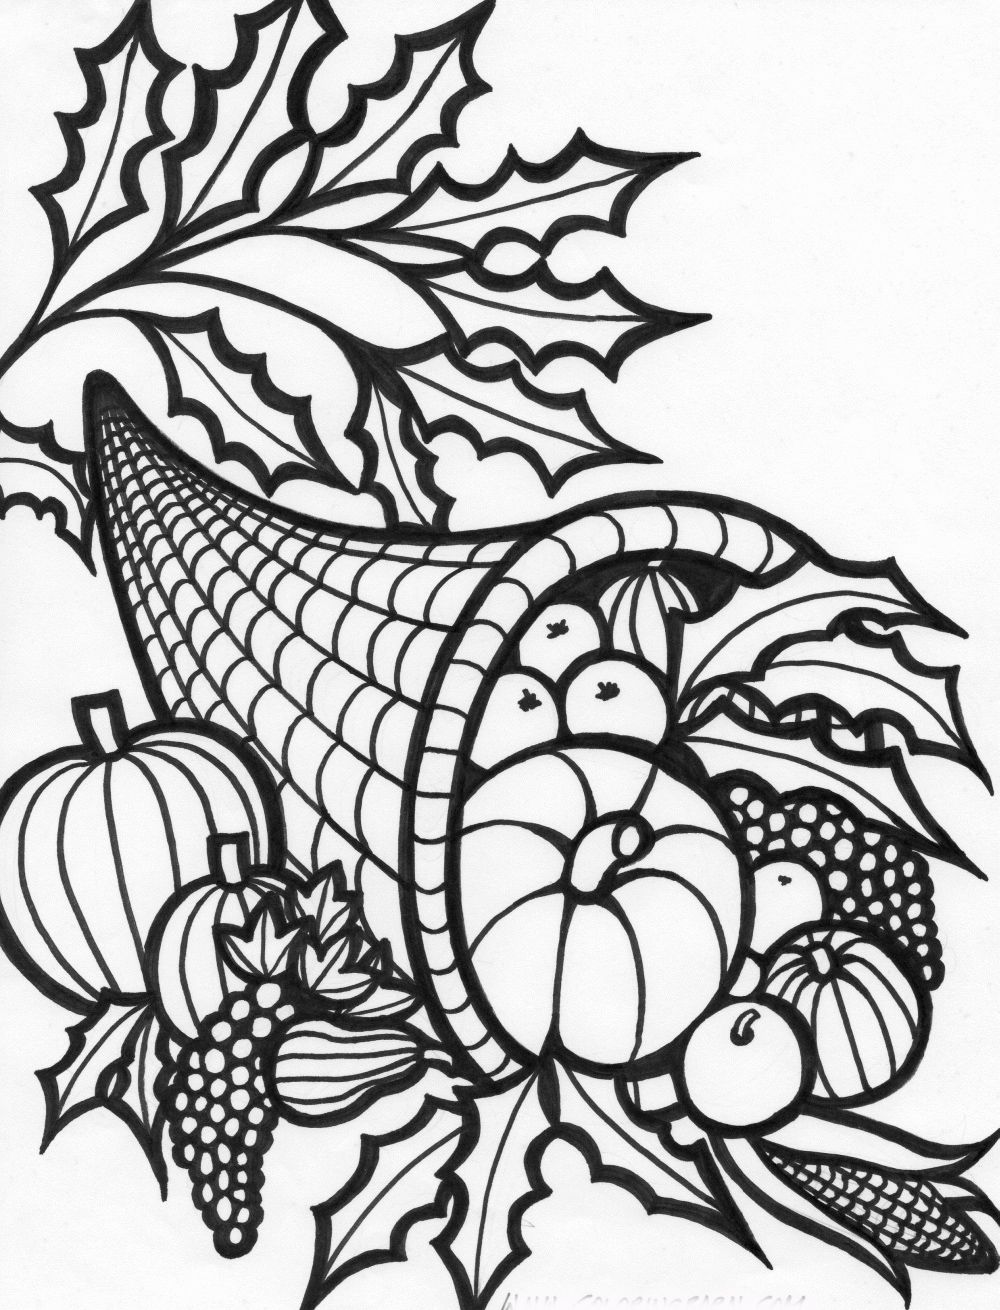 Cornucopia Represents The Bountiful Autumn Season Of Thanksgiving Full Of Fresh Fruits A Thanksgiving Coloring Sheets Turkey Coloring Pages Free Coloring Pages